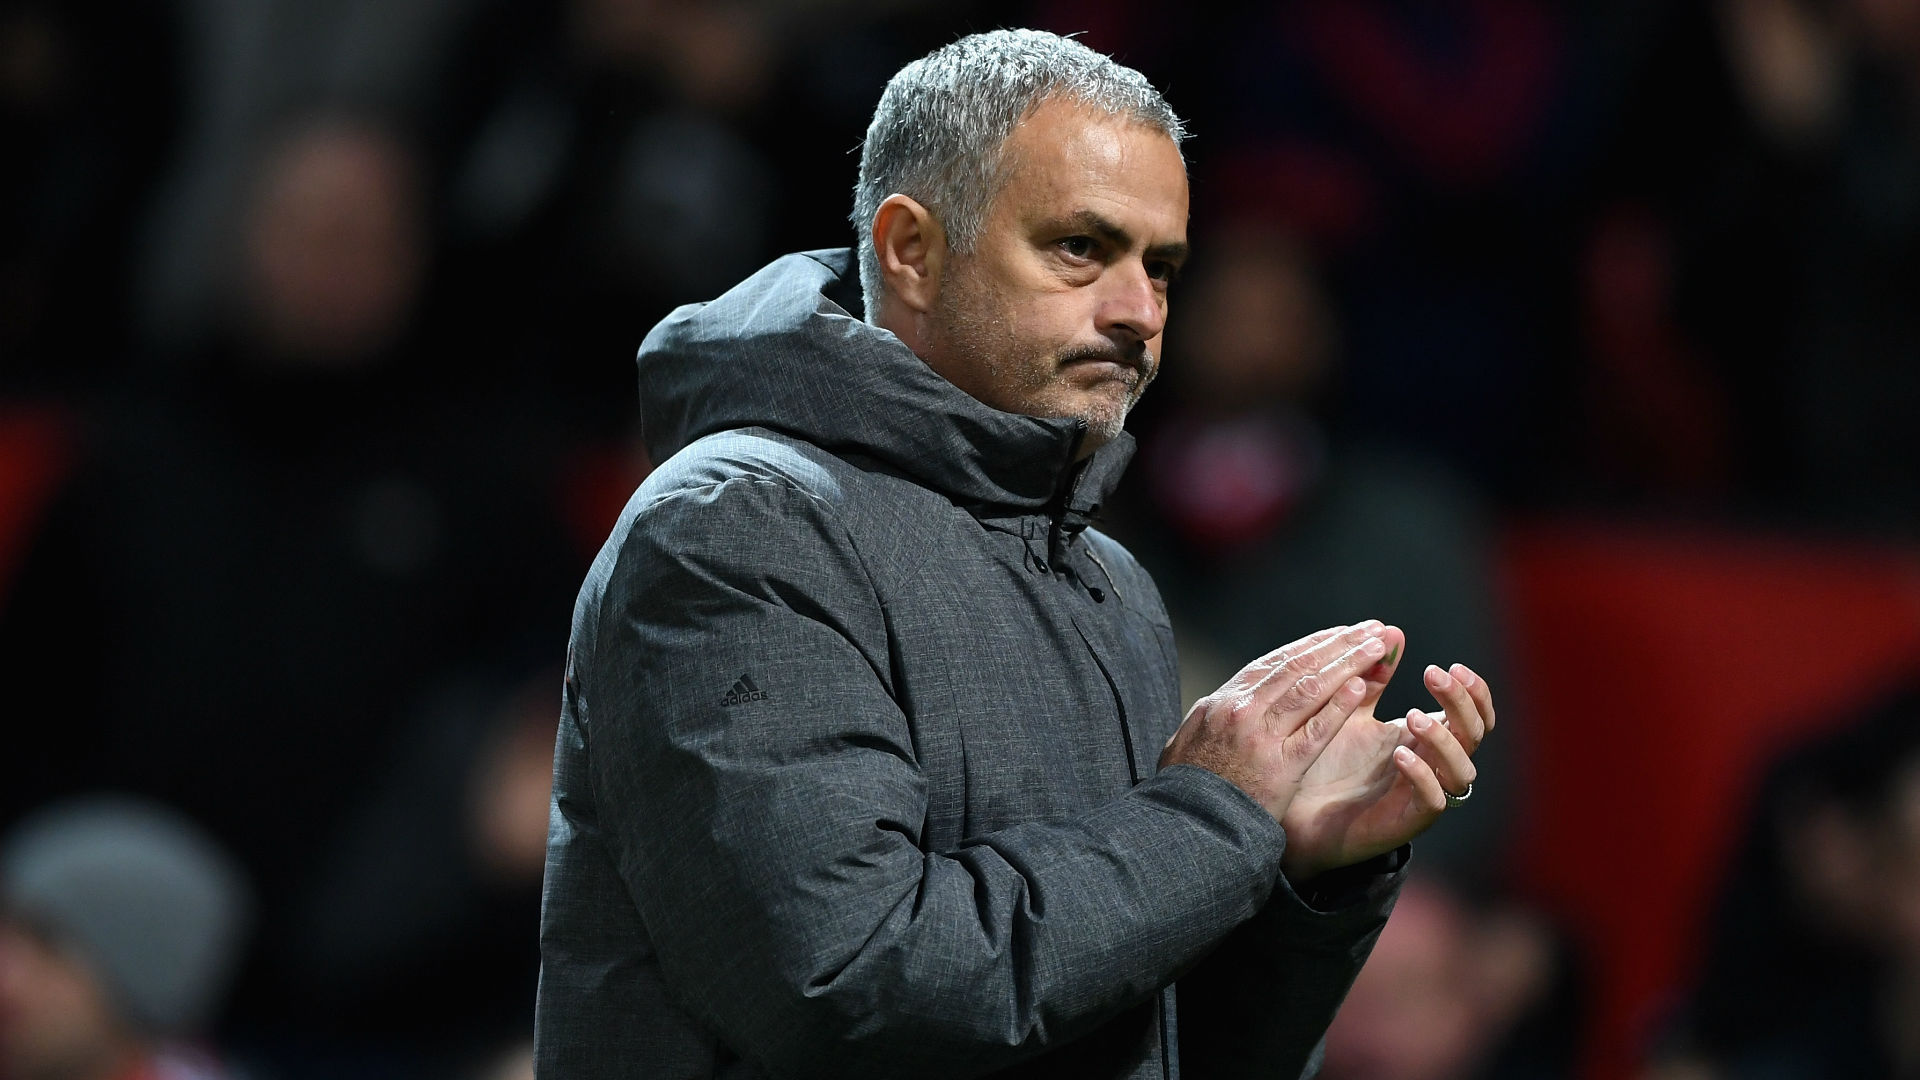 'Who is more ambitious than us?' - Mourinho defends Man Utd style of play